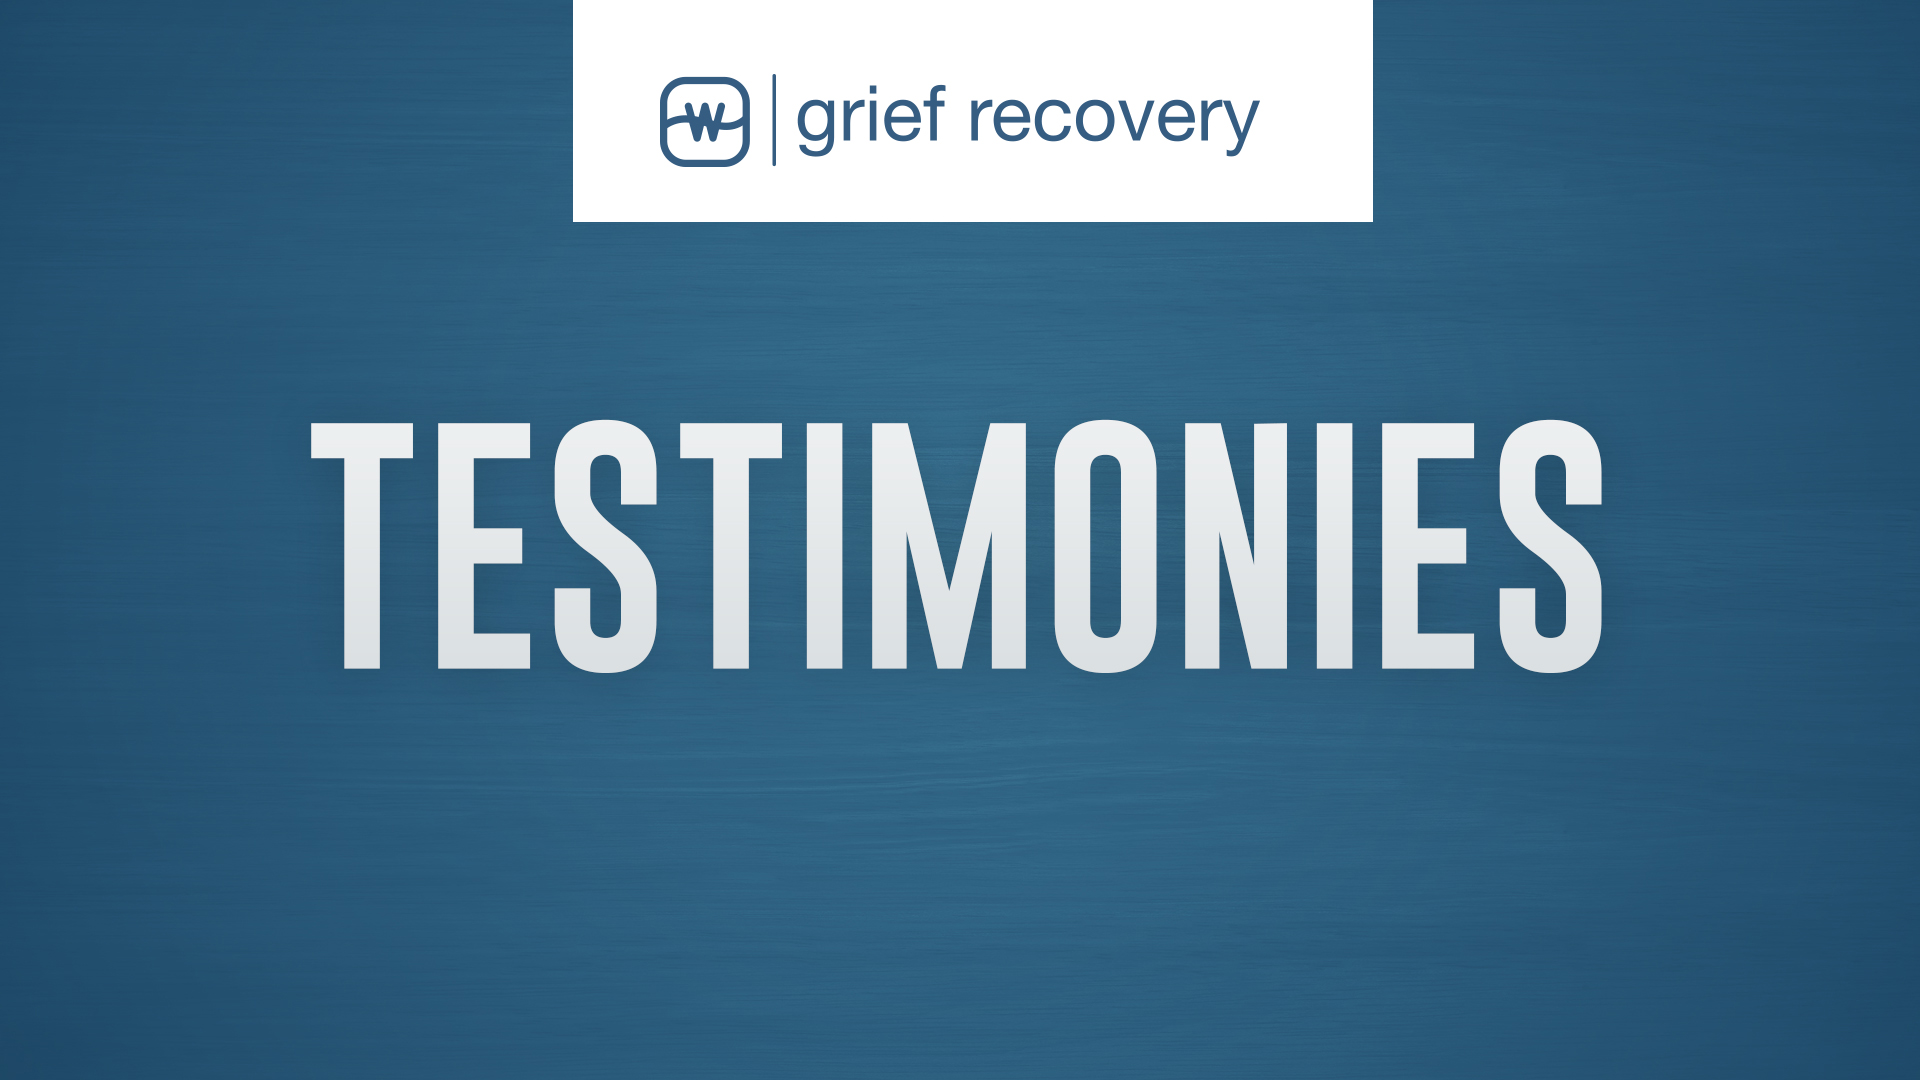 Willie - Grief Recovery Testimony